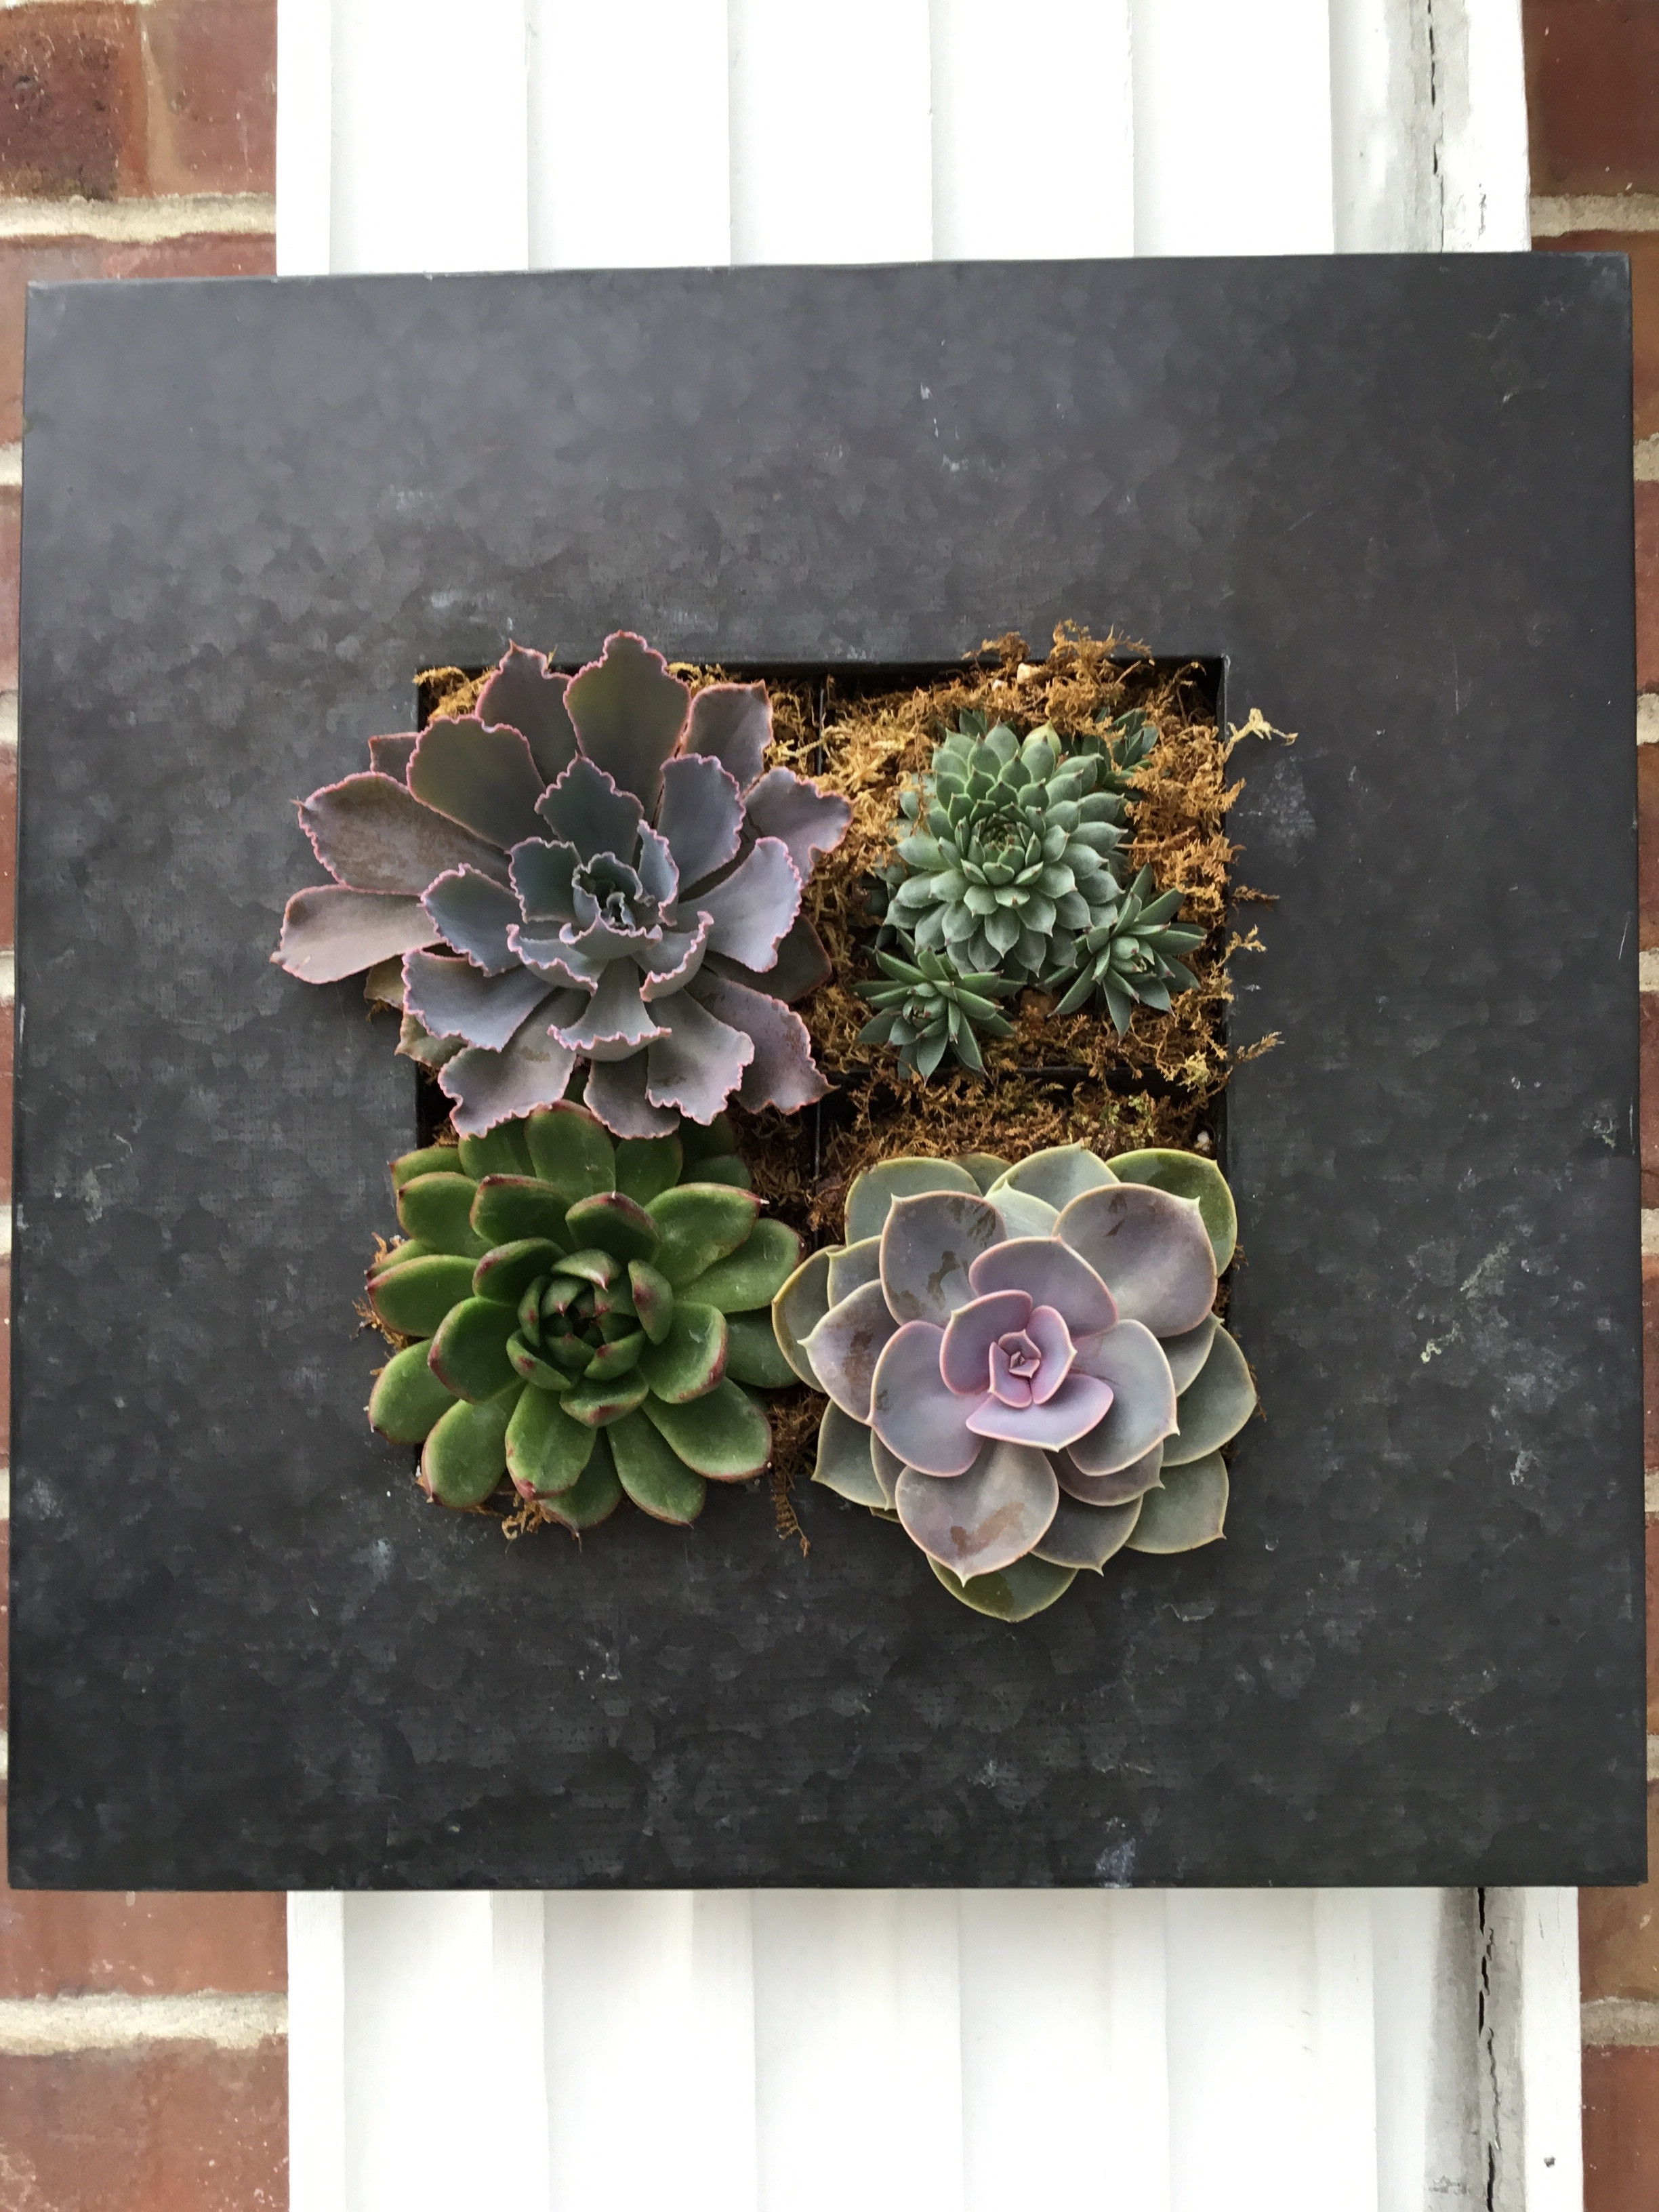 Succulent Wall Hanger In Burlingame, Ca | Floral Art And Decor for Succulent Wall Art (Image 17 of 20)